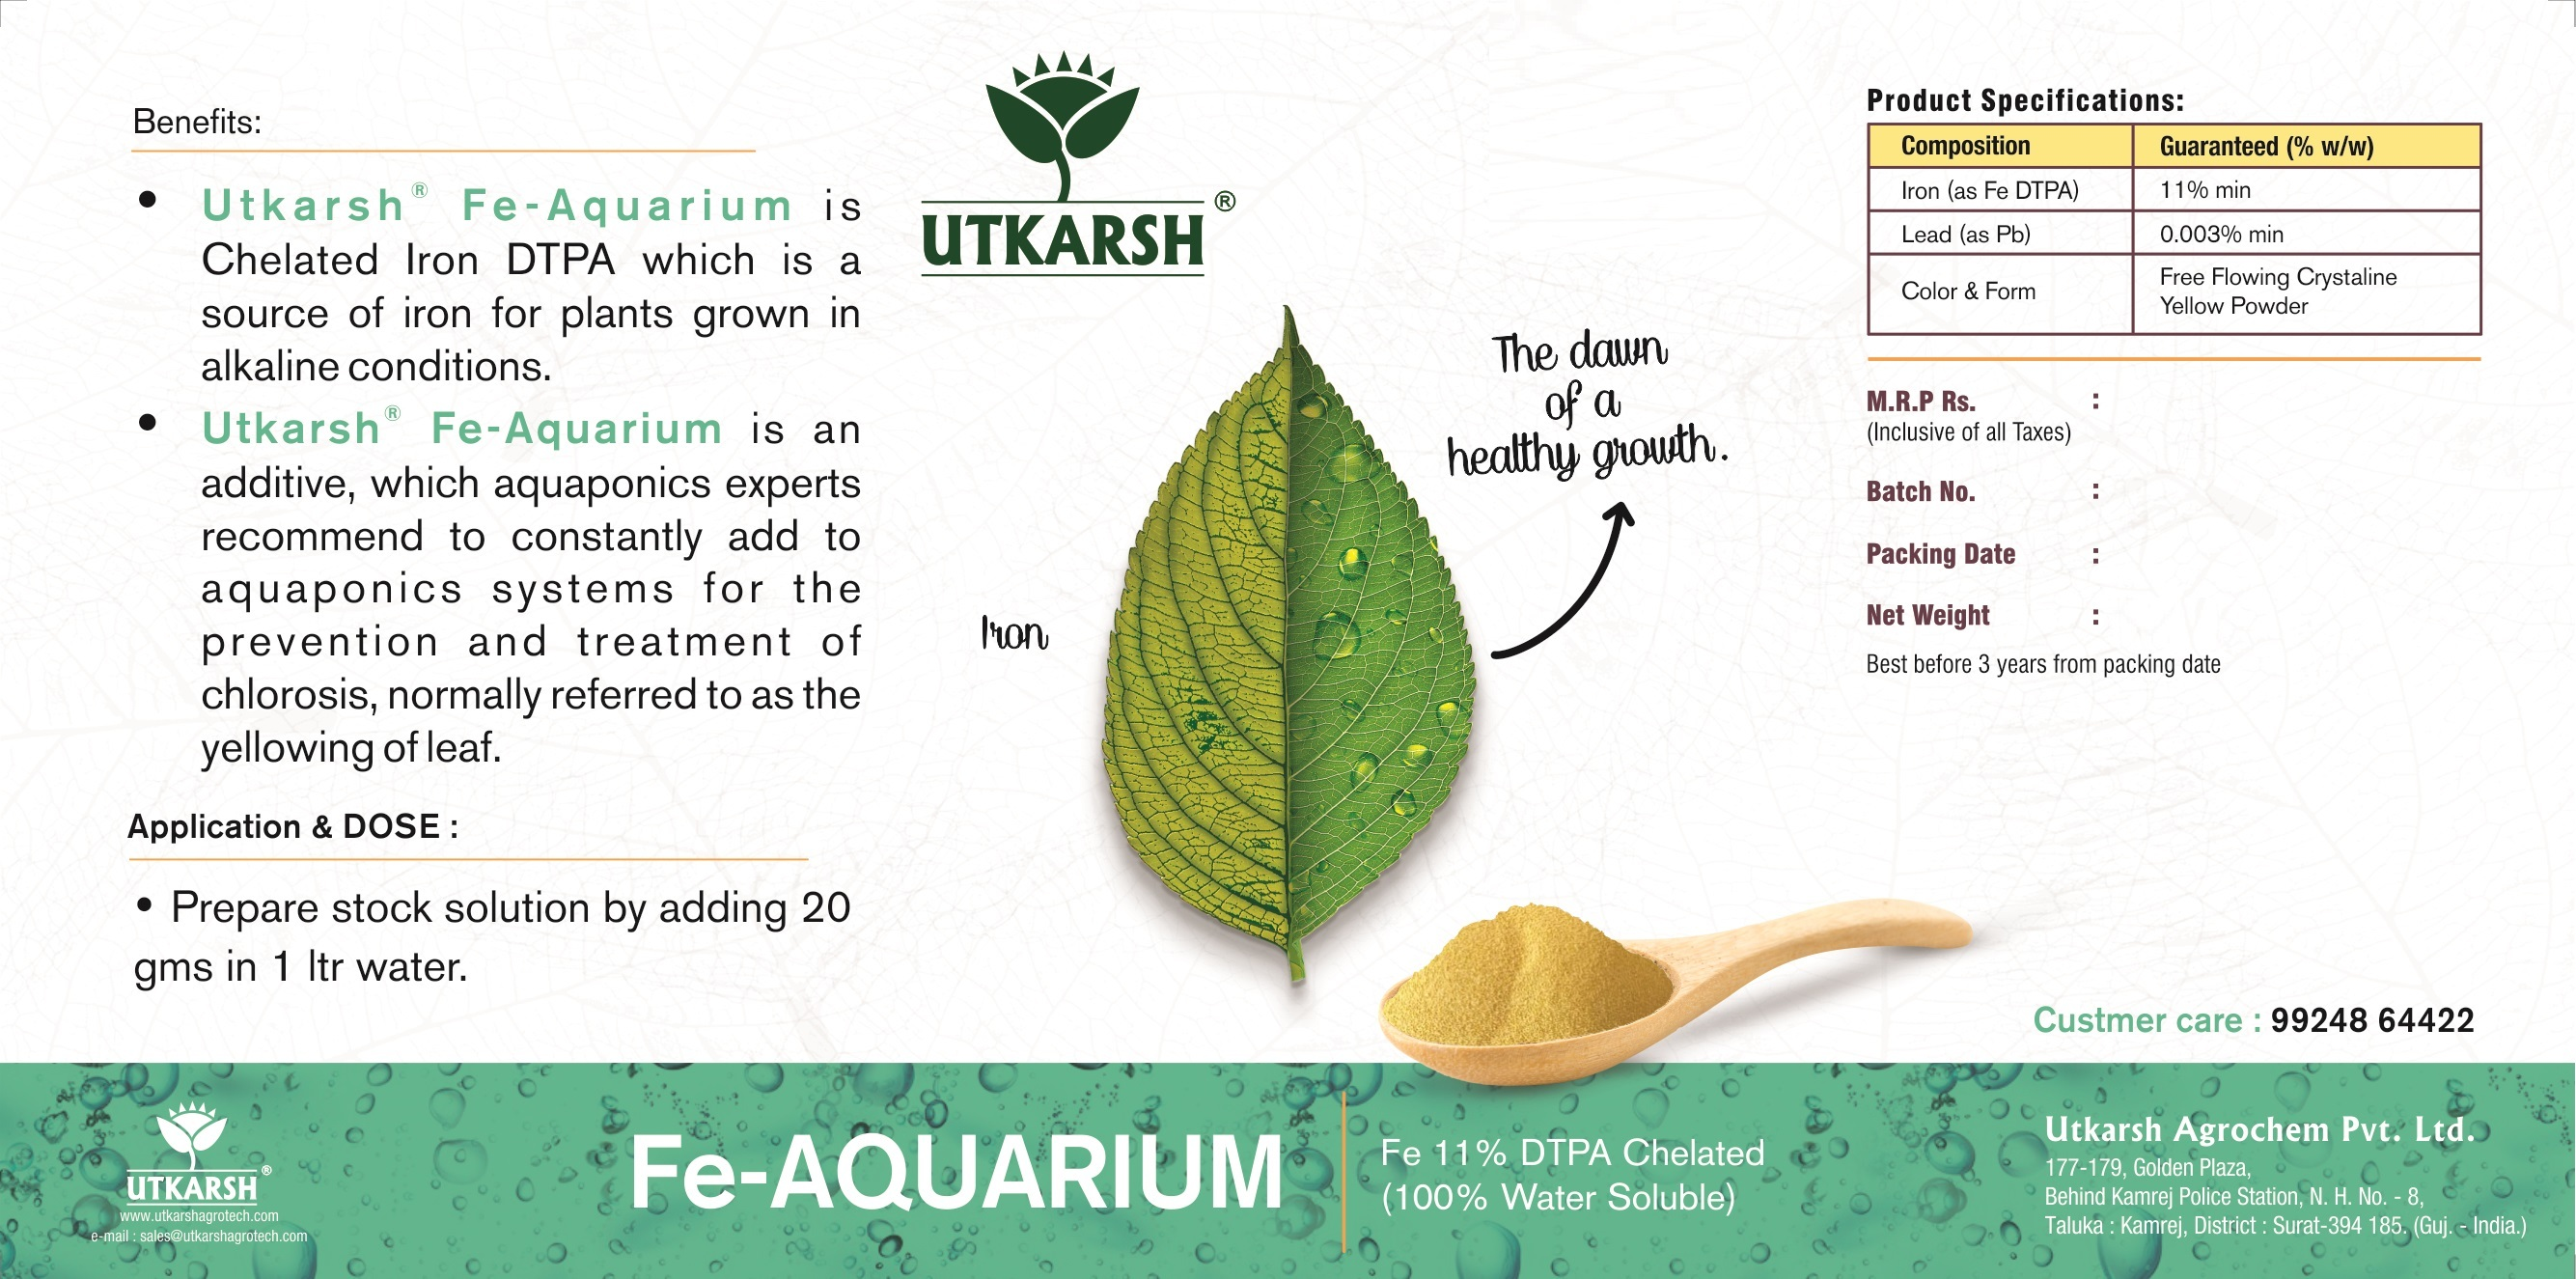 Iron Fe 11% DTPA Chelated